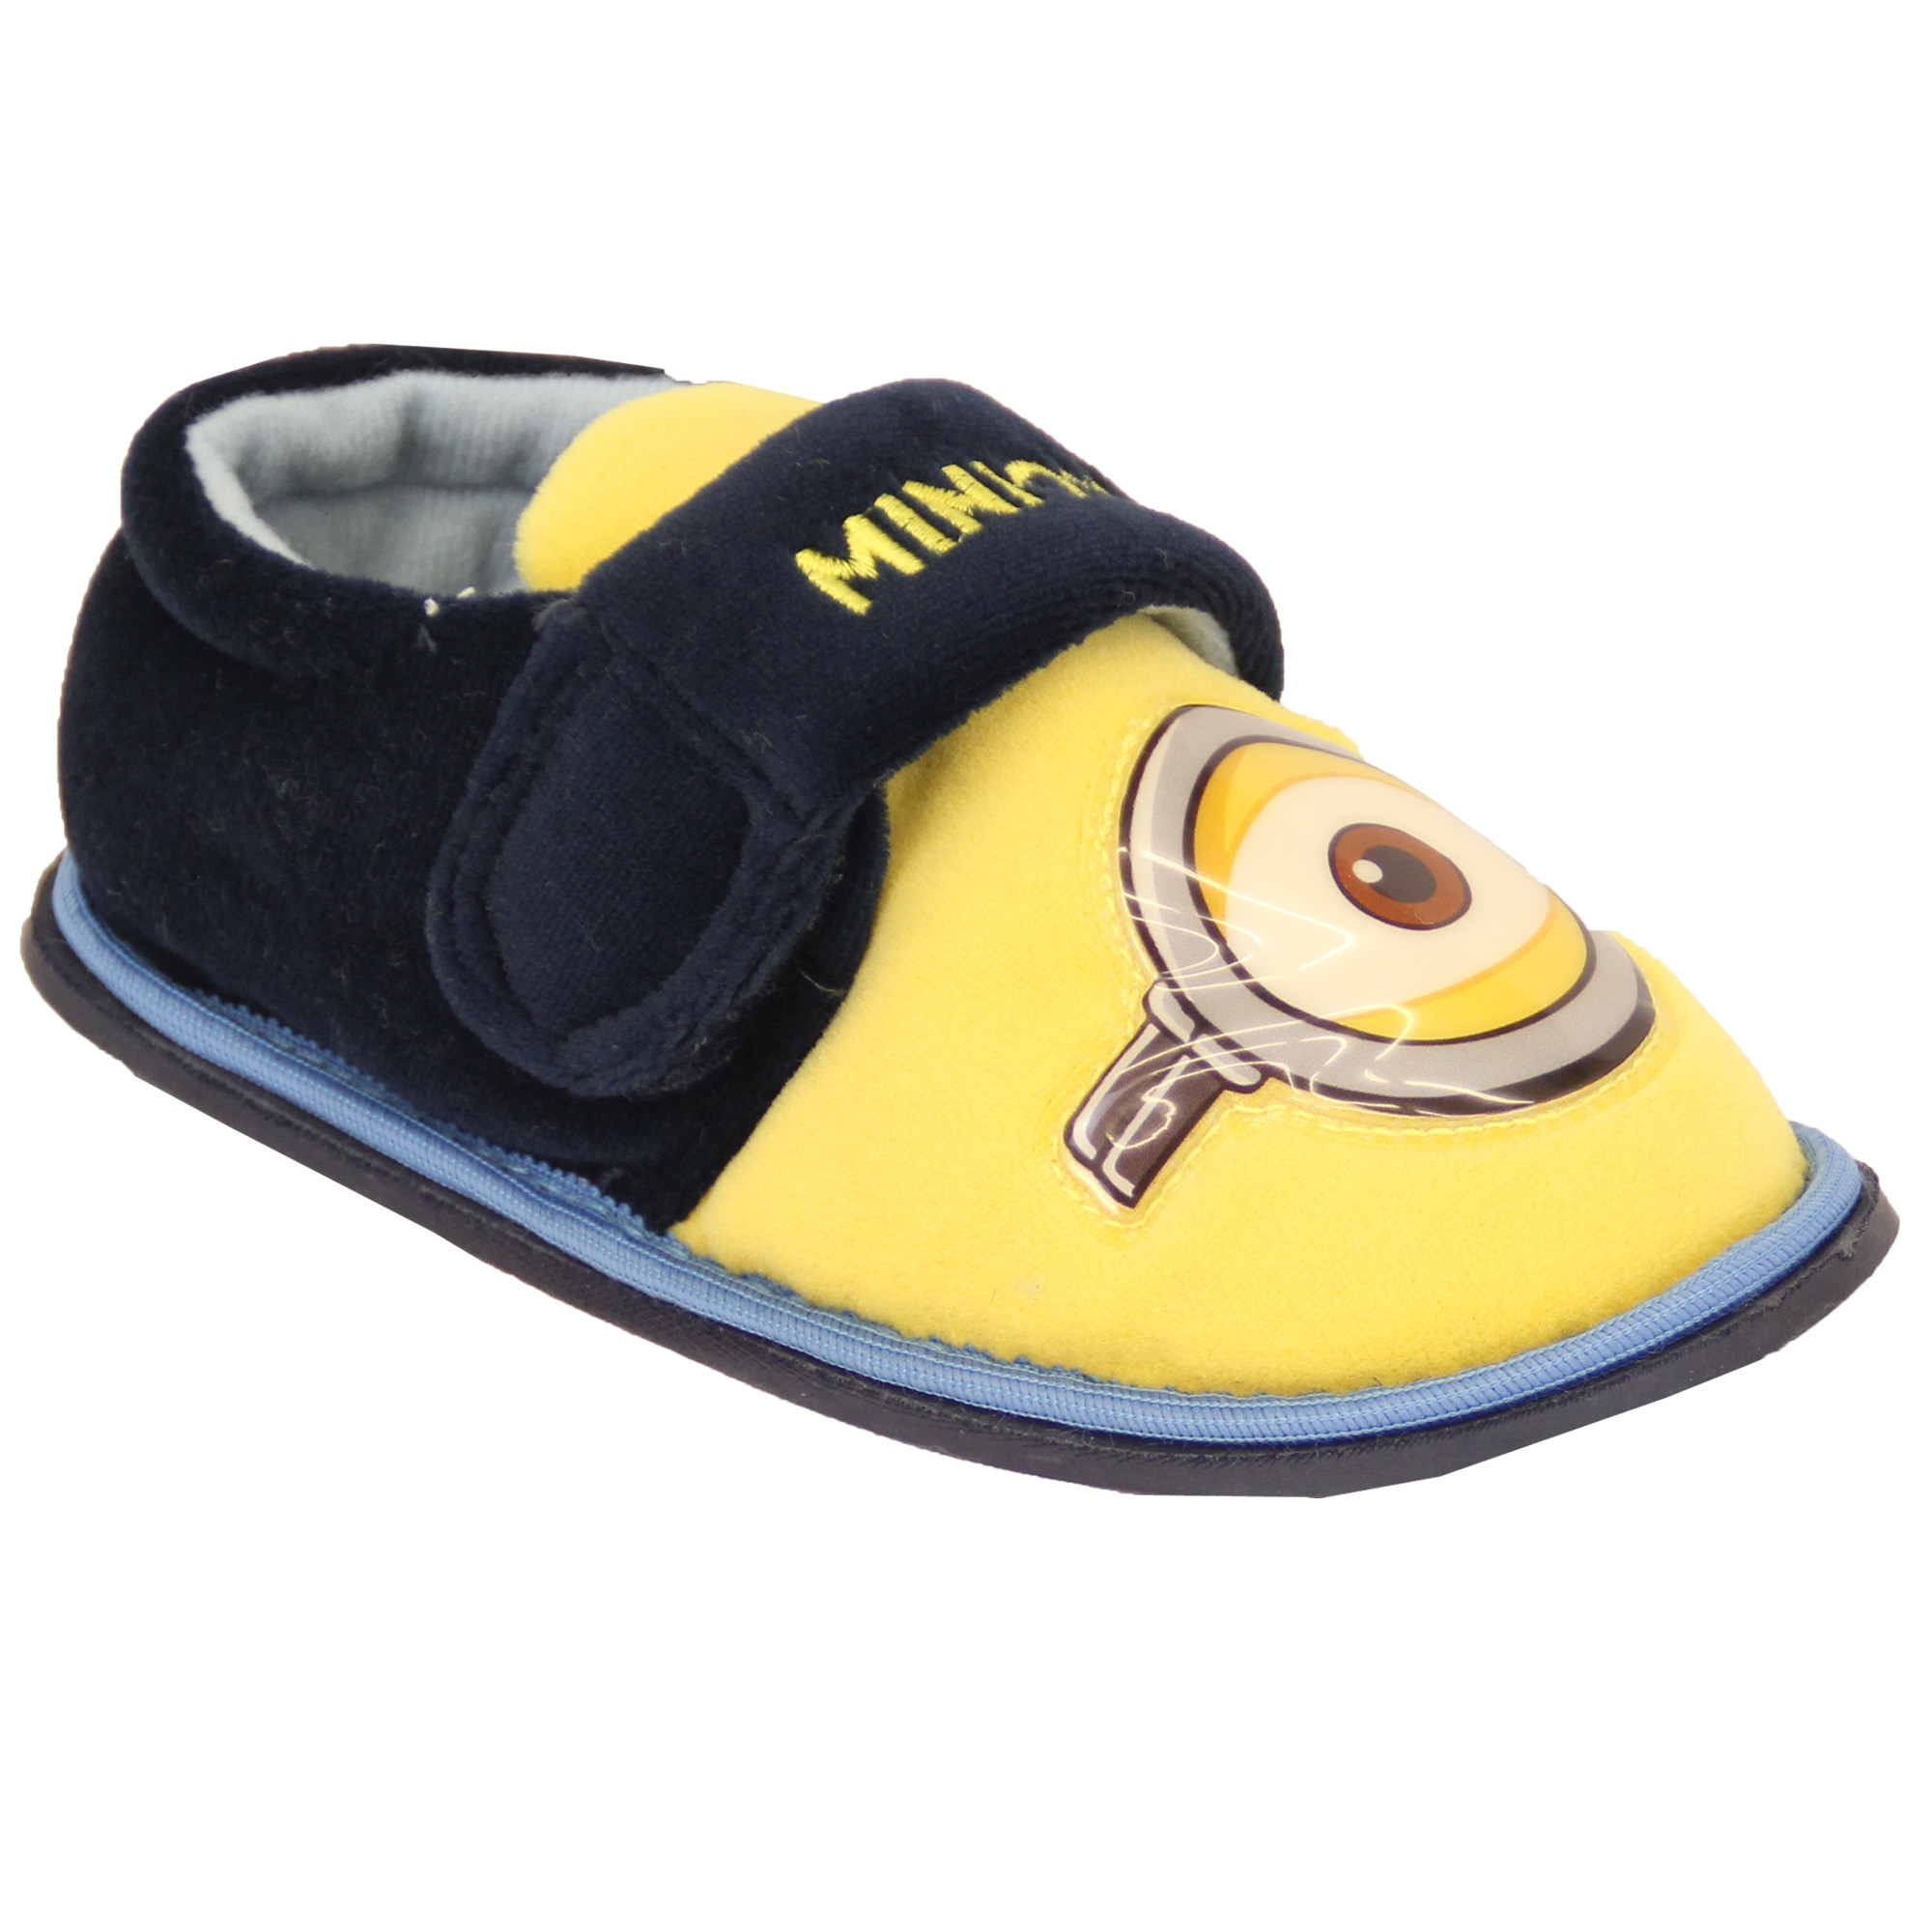 Enjoy free shipping and easy returns every day at Kohl's. Find great deals on Despicable Me at Kohl's today!